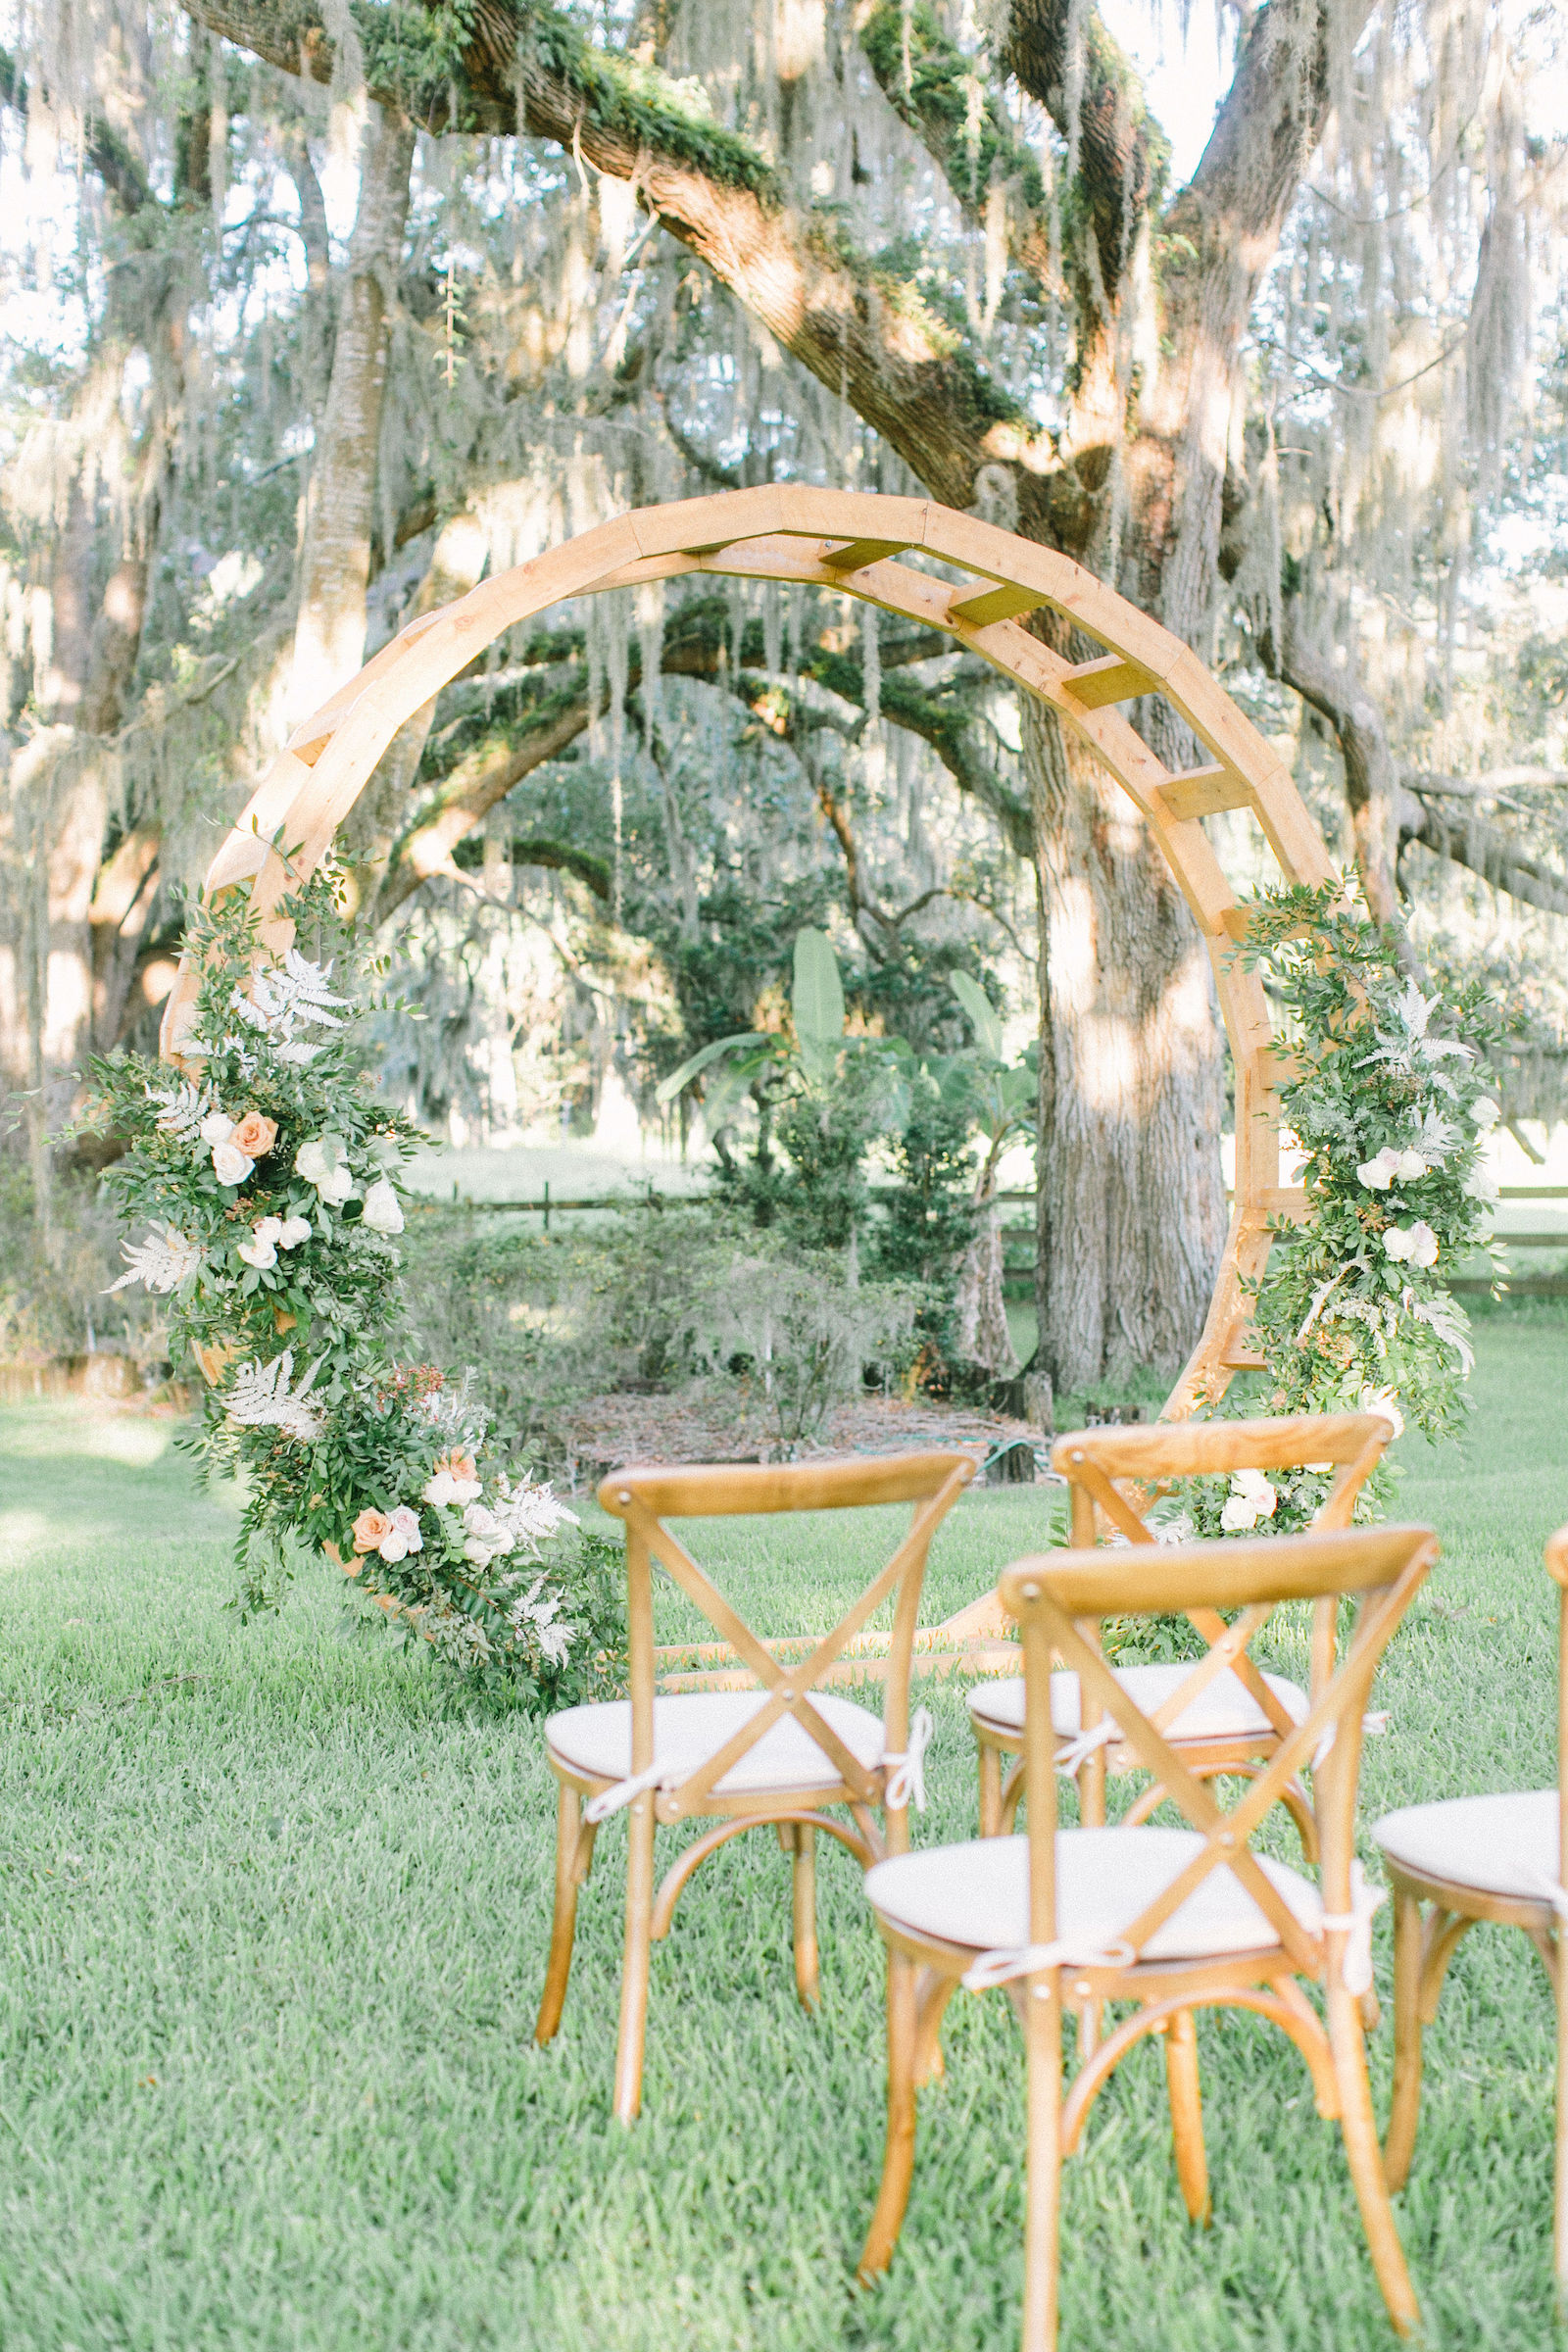 Outdoor Florida At Home Front Back Yard Wedding Ceremony | Round Wood Moon Arch Wedding Ceremony Backdrop with Natural Ivory and Peach Garland Floral Arrangements | Wood French Country Cross Back Chairs with Ivory Cushions